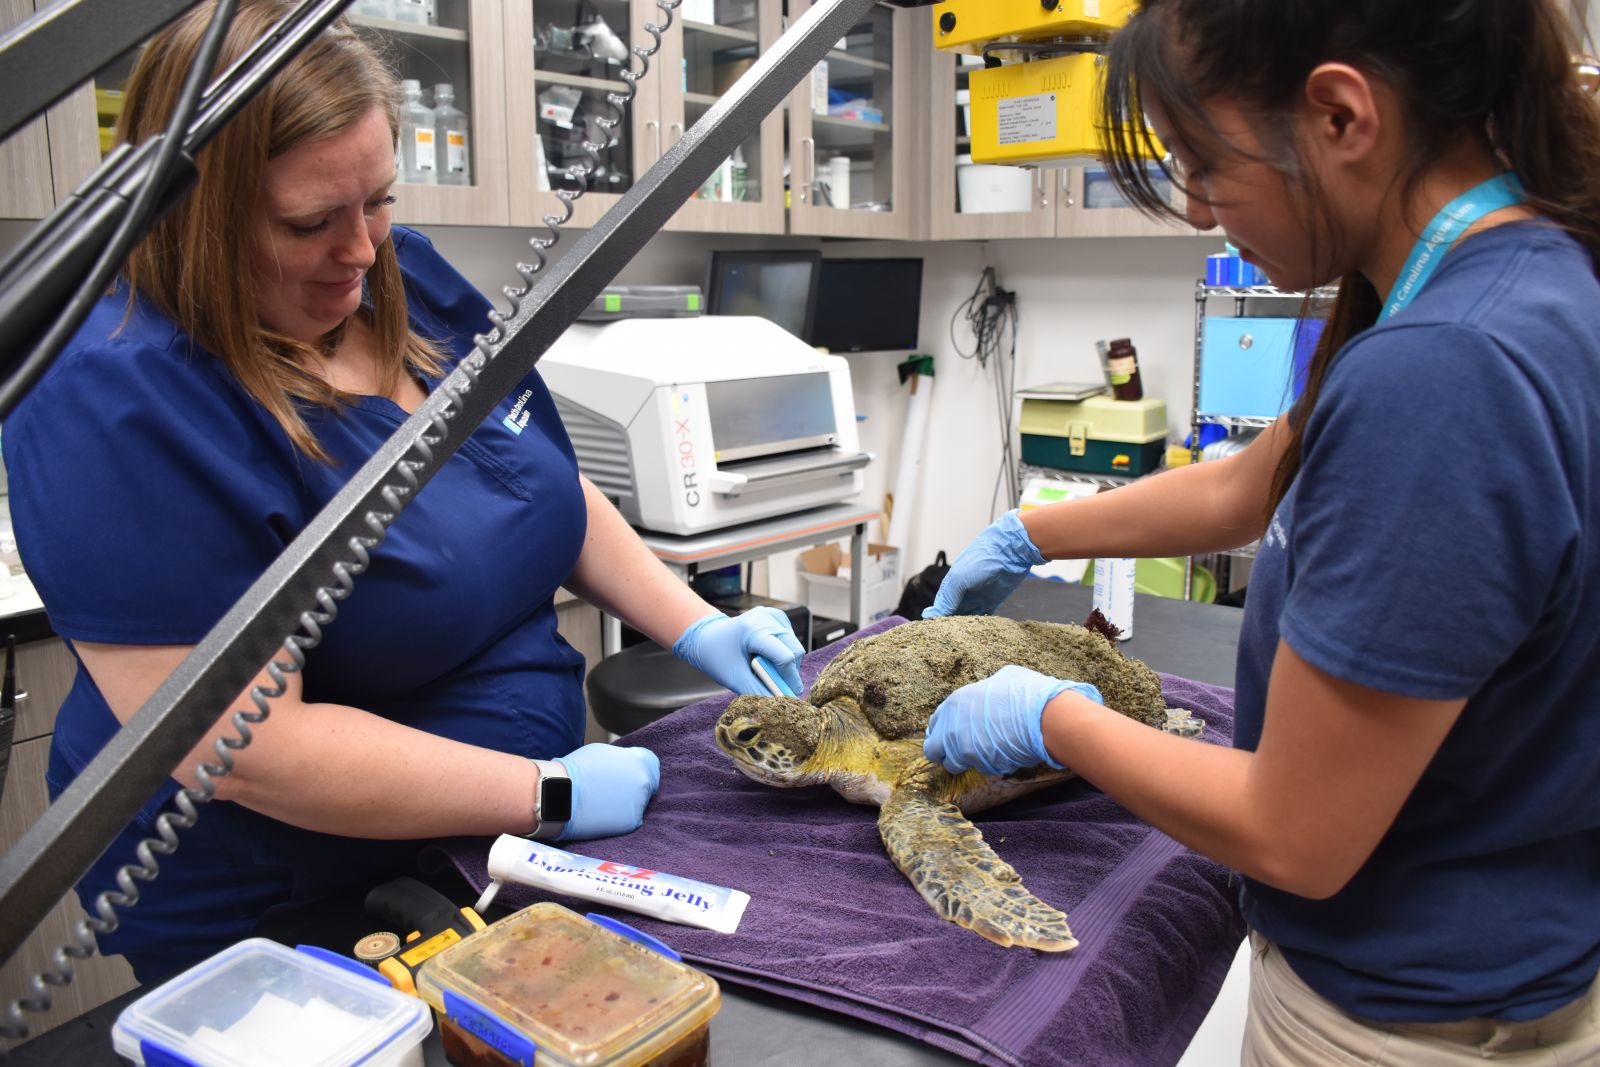 Whitney Daniel, left, veterinary assistant and Alexis Ybarra, sea turtle volunteer, tending to Aardvark at the S.C. Aquarium Sea Turtle Care Center in downtown Charleston. (Photo/Provided)